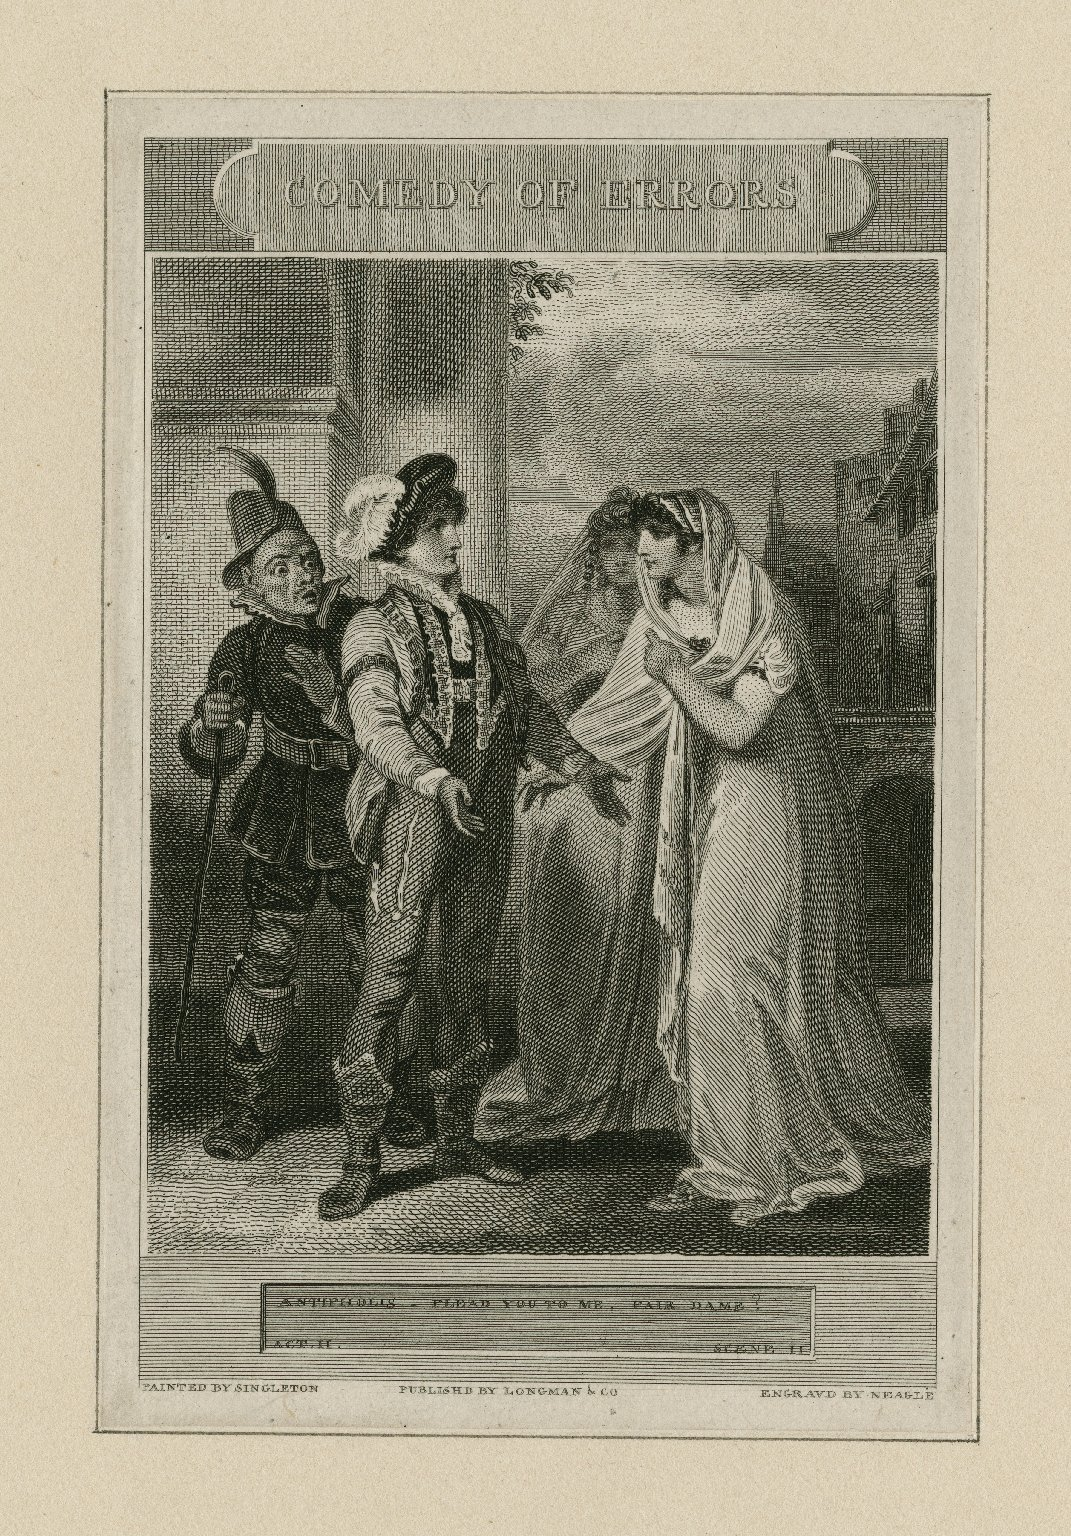 Comedy of errors, Antipholis: Plead you to me, fair dame? Act II, scene II [graphic] / painted by Singleton ; engrav'd by Neagle.